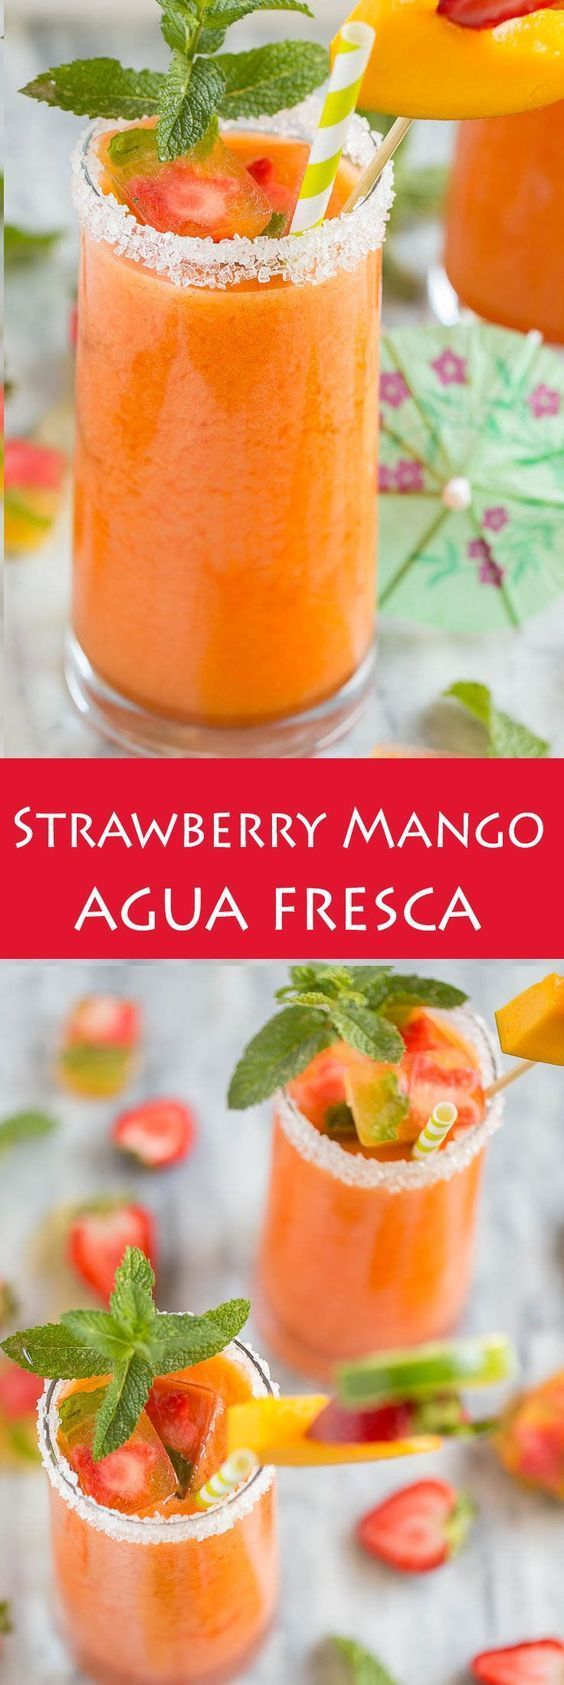 Strawberry mango agua fresca is the perfect light and refreshing drink.. #Summer